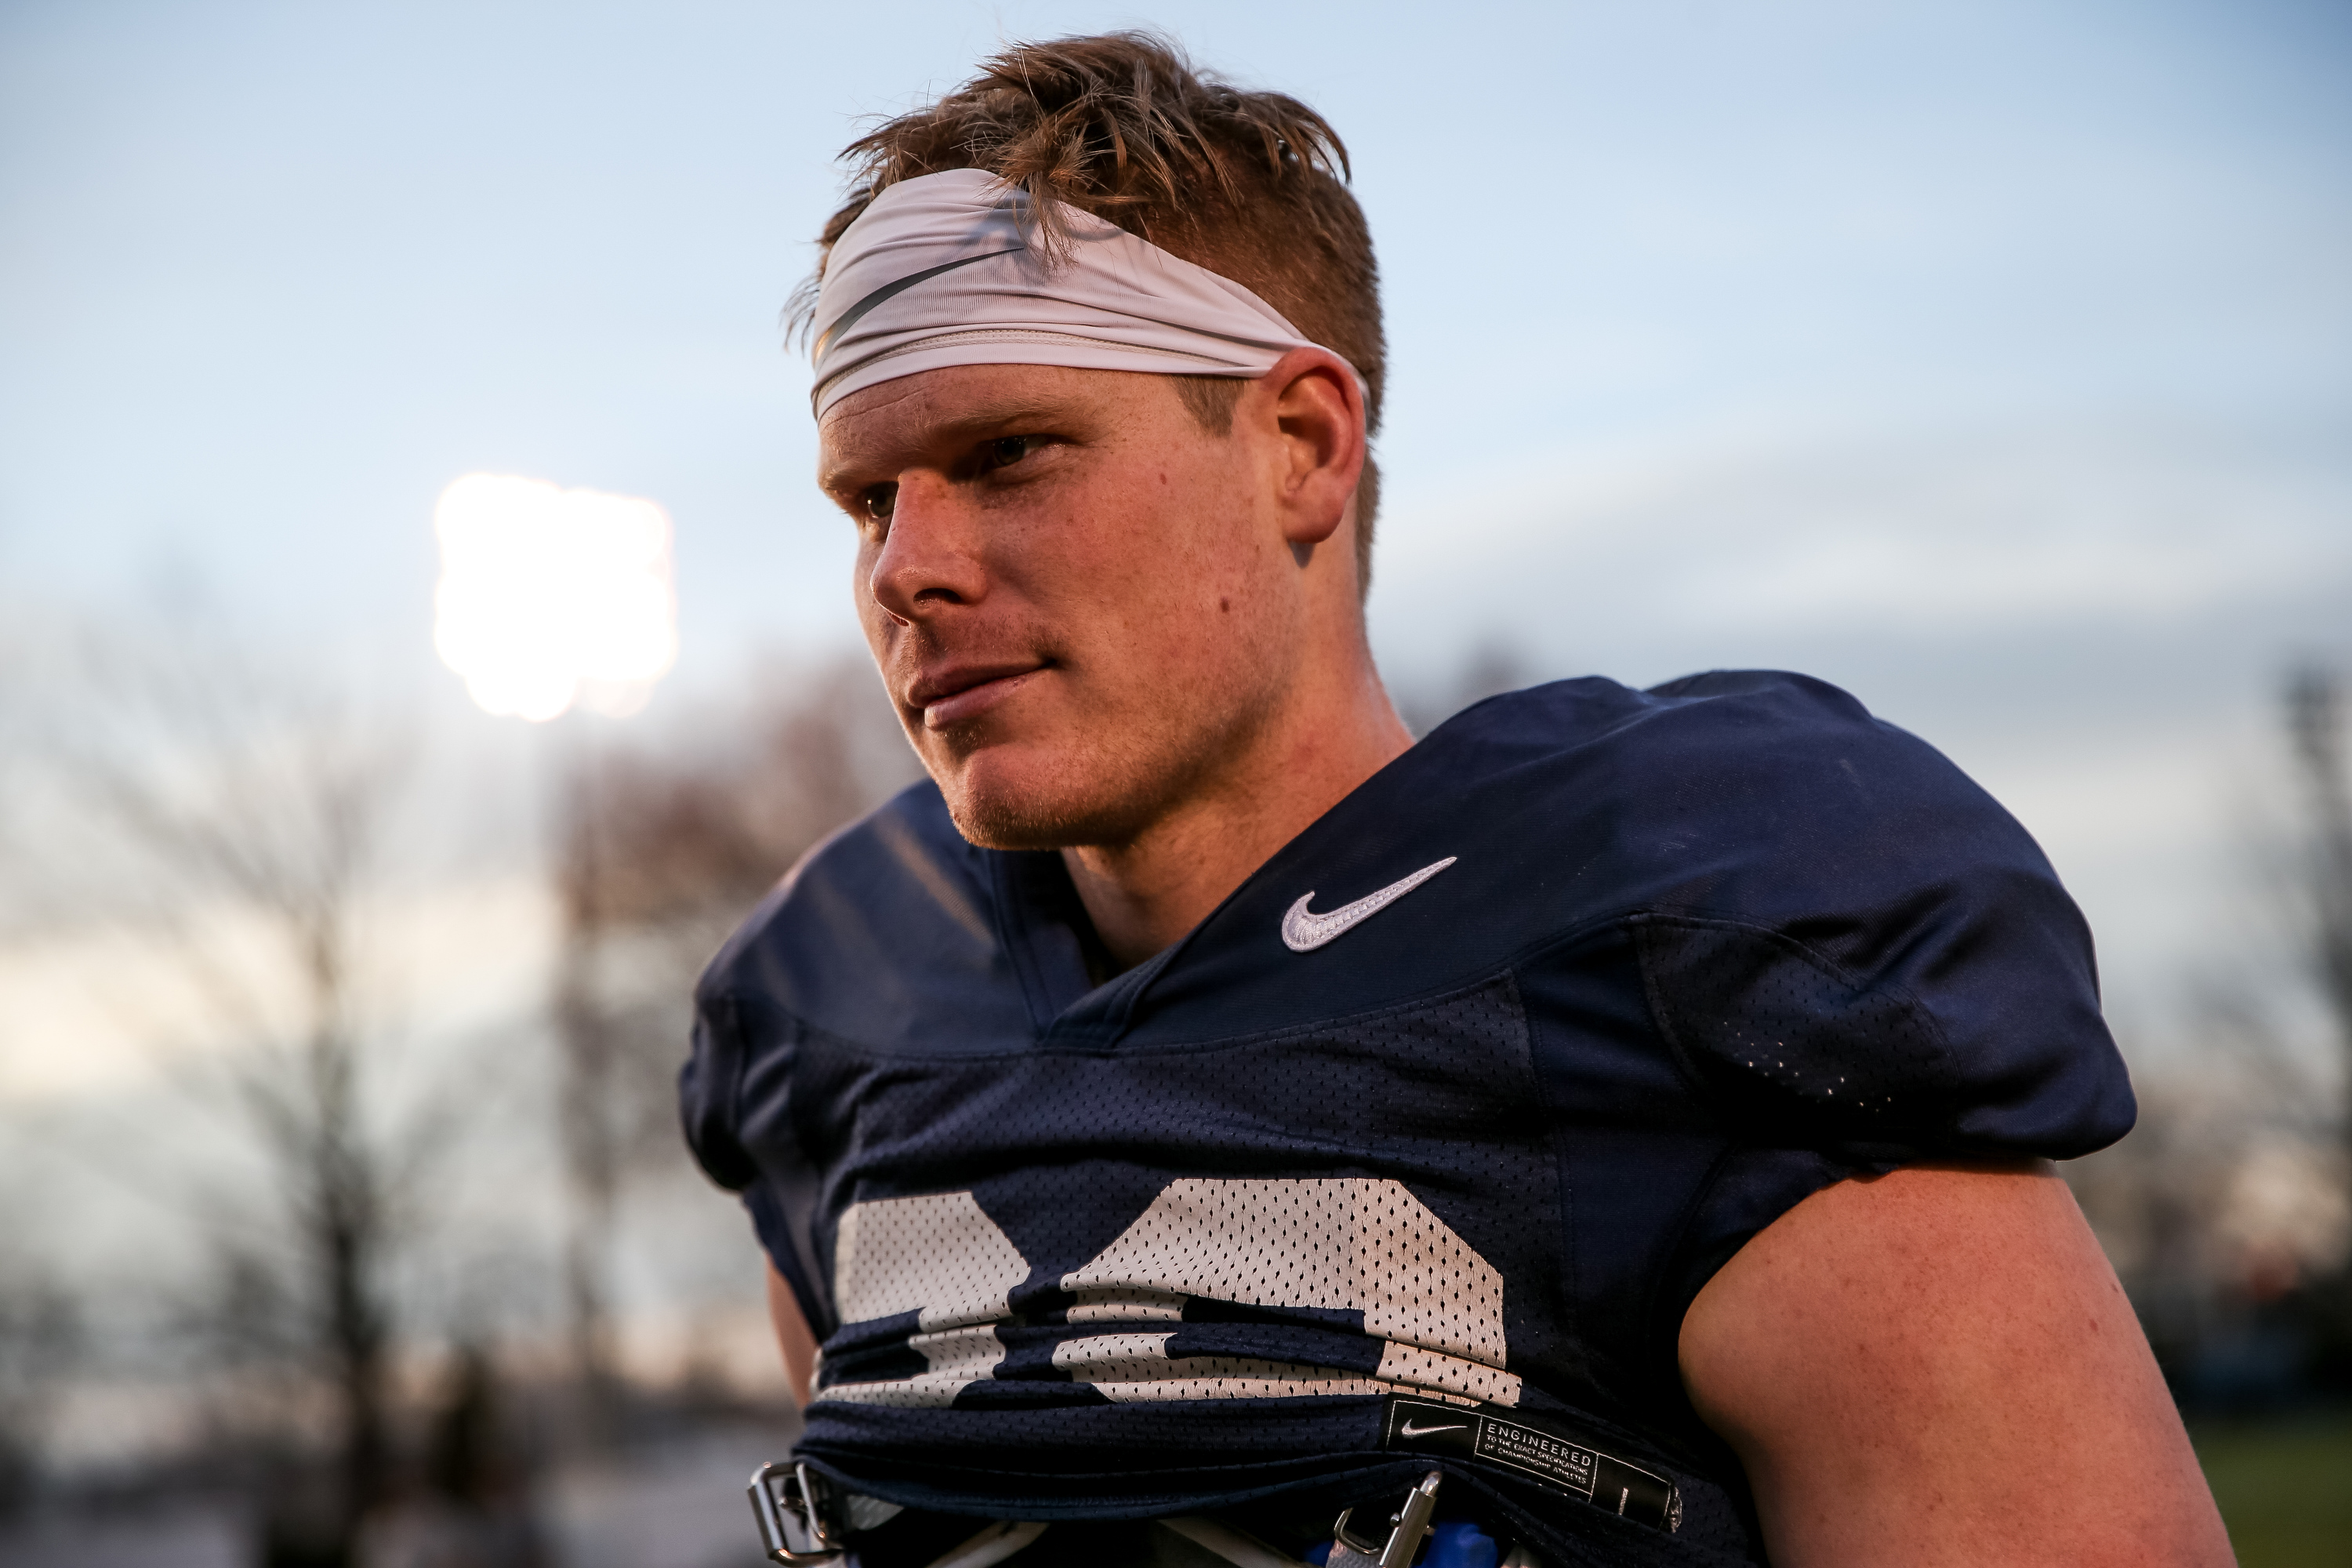 Tight end Matt Bushman walks off the field after a Brigham Young University football practice in Provo on Friday, March 6, 2020.